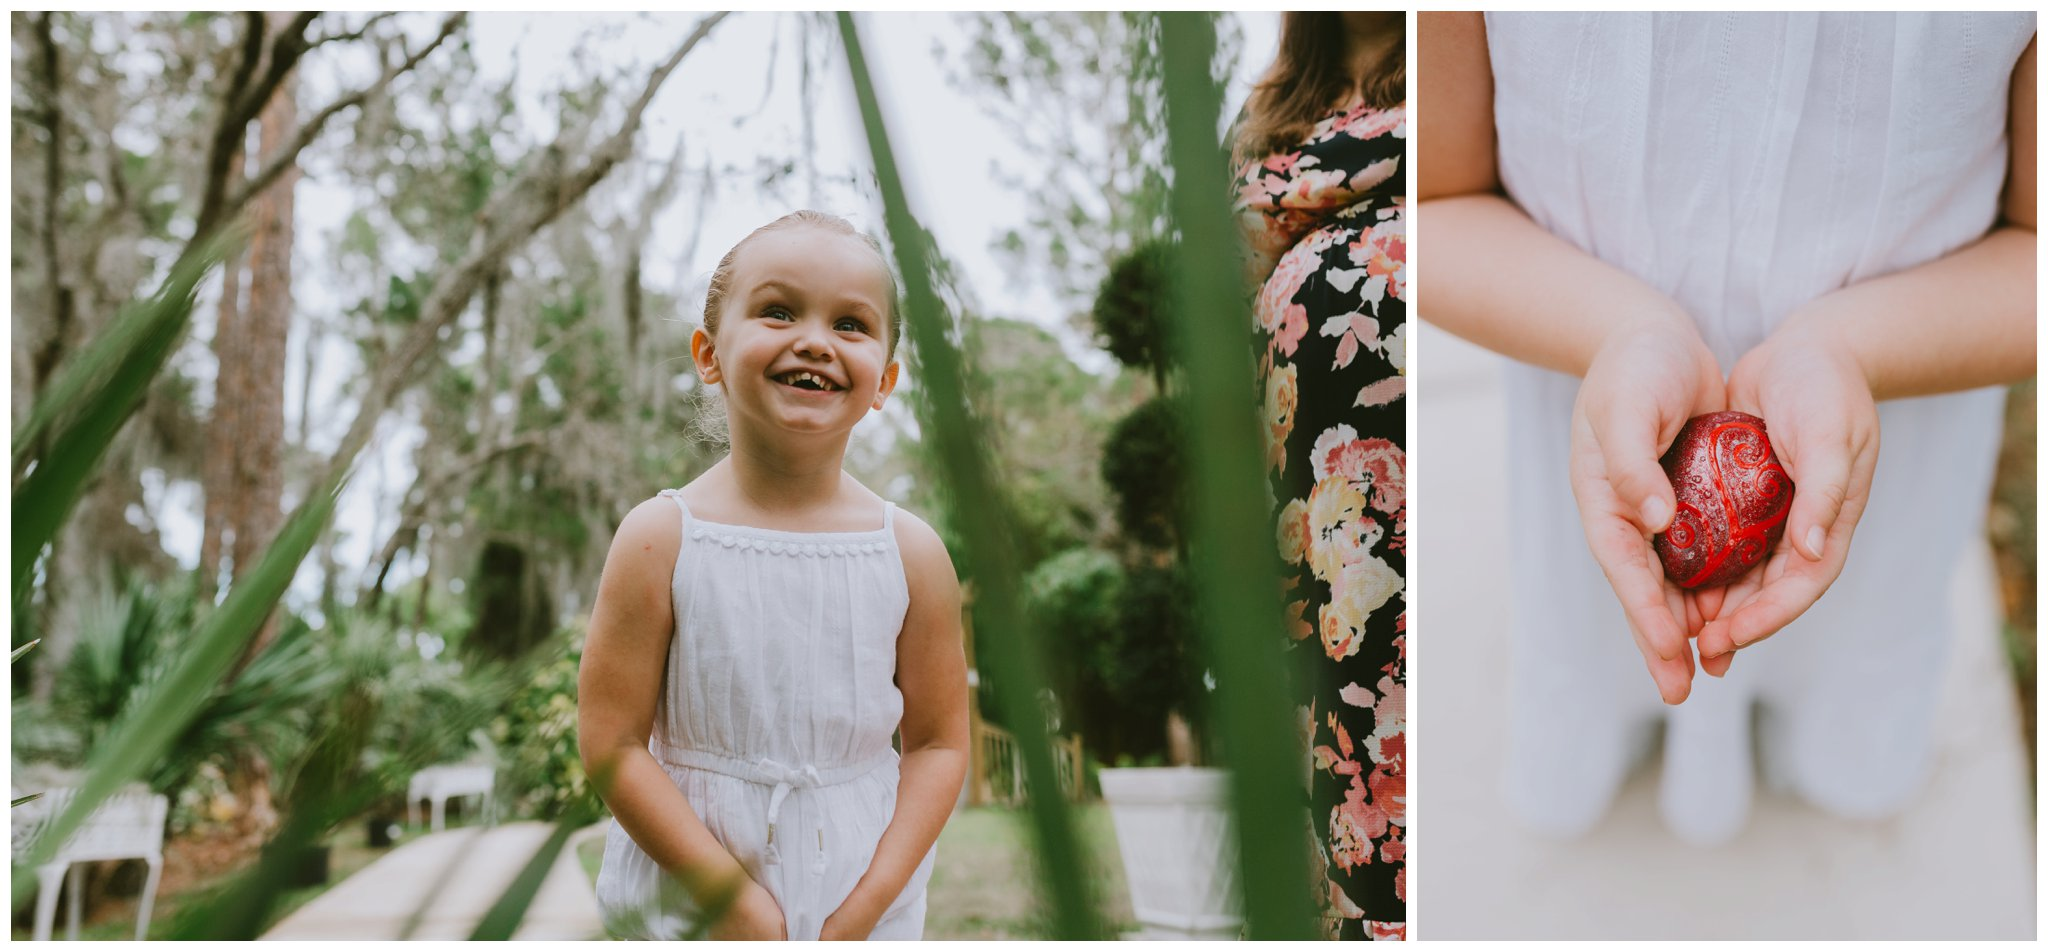 Kimberly Smith Photography| Port St Lucie Botanical Gardens| Maternity Photos| Jupiter Florida Photographer | Stuart Fl photographer_0199.jpg